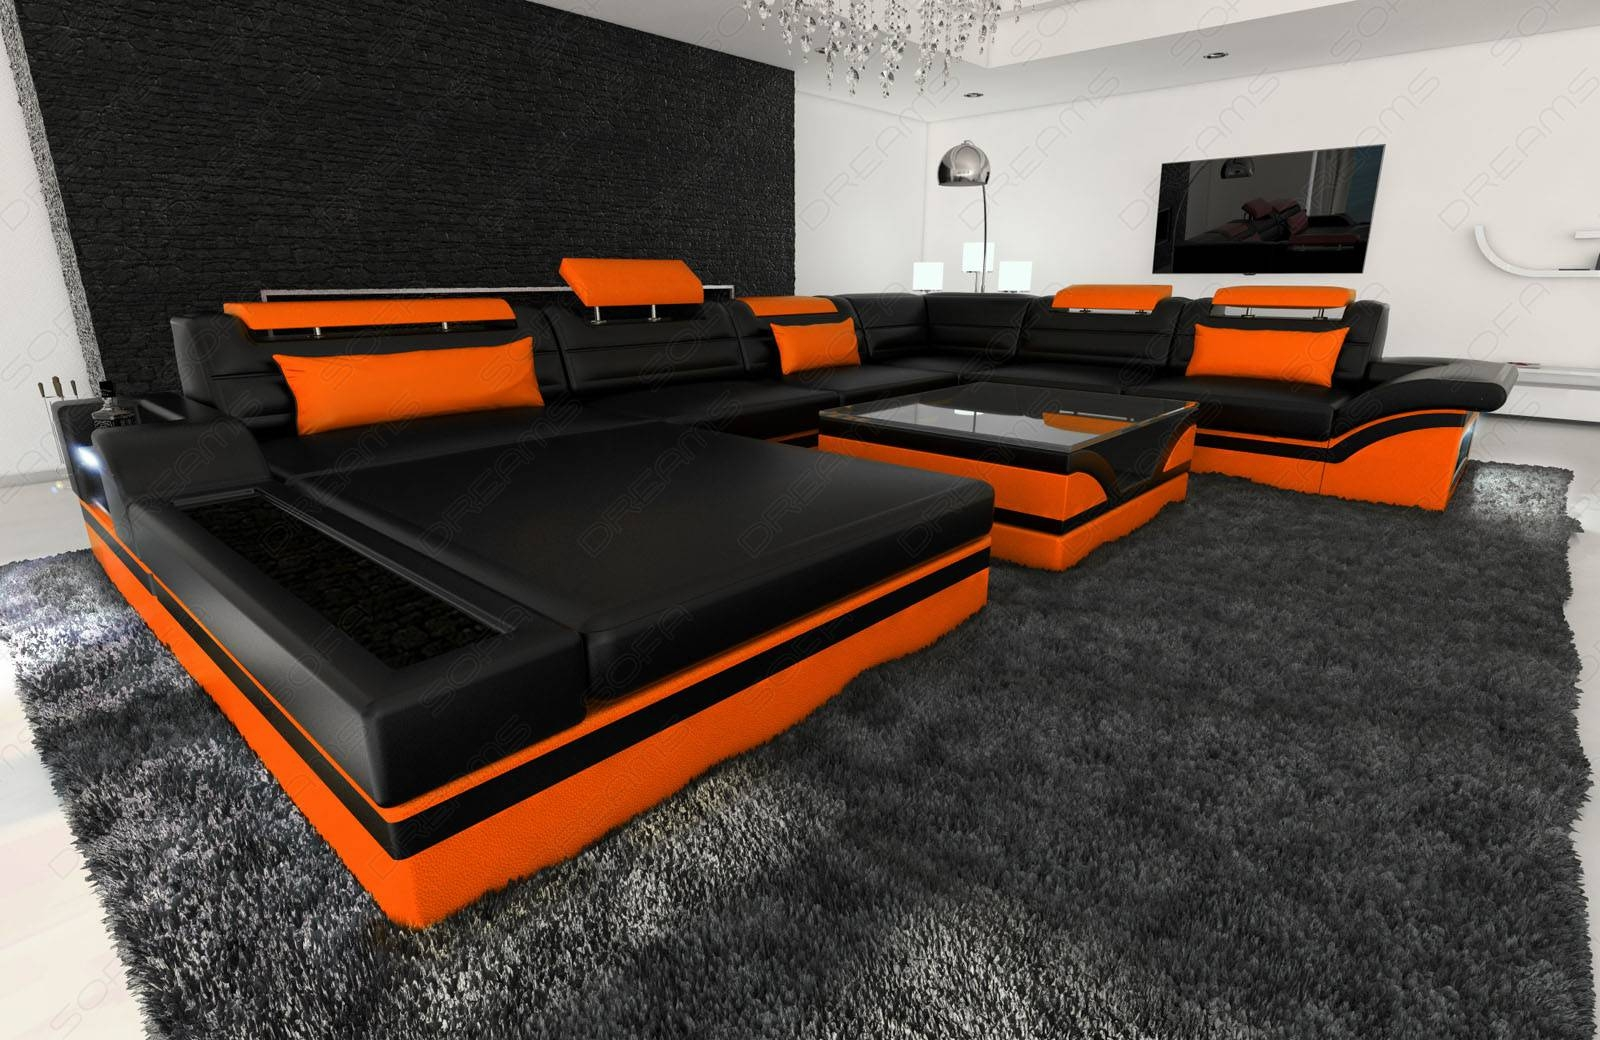 Design Sectional Sofa Mezzo Xxl With Led Lights Black Orange throughout Orange Sectional Sofa (Image 15 of 30)